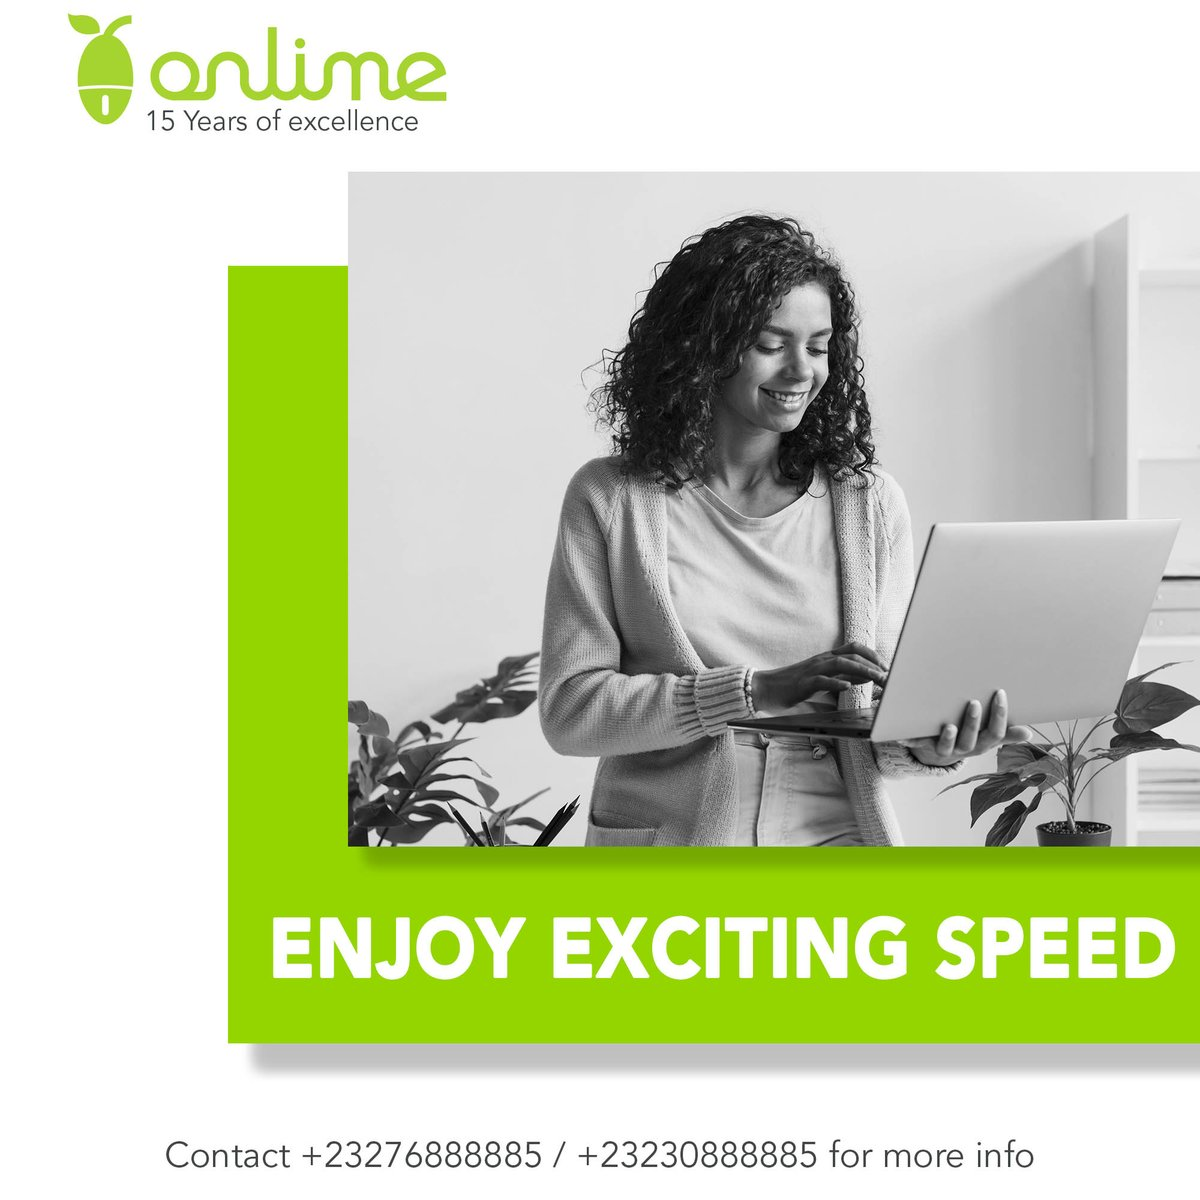 Keep your need for high speed Wi-Fi always satisfied with #OnlimeInternet. Call 076 888885 / 030 888885 or email sales@onlime.sl for more info. #SierraLeone #SaloneTwitter #Freetown https://t.co/9ufF25ZMI0